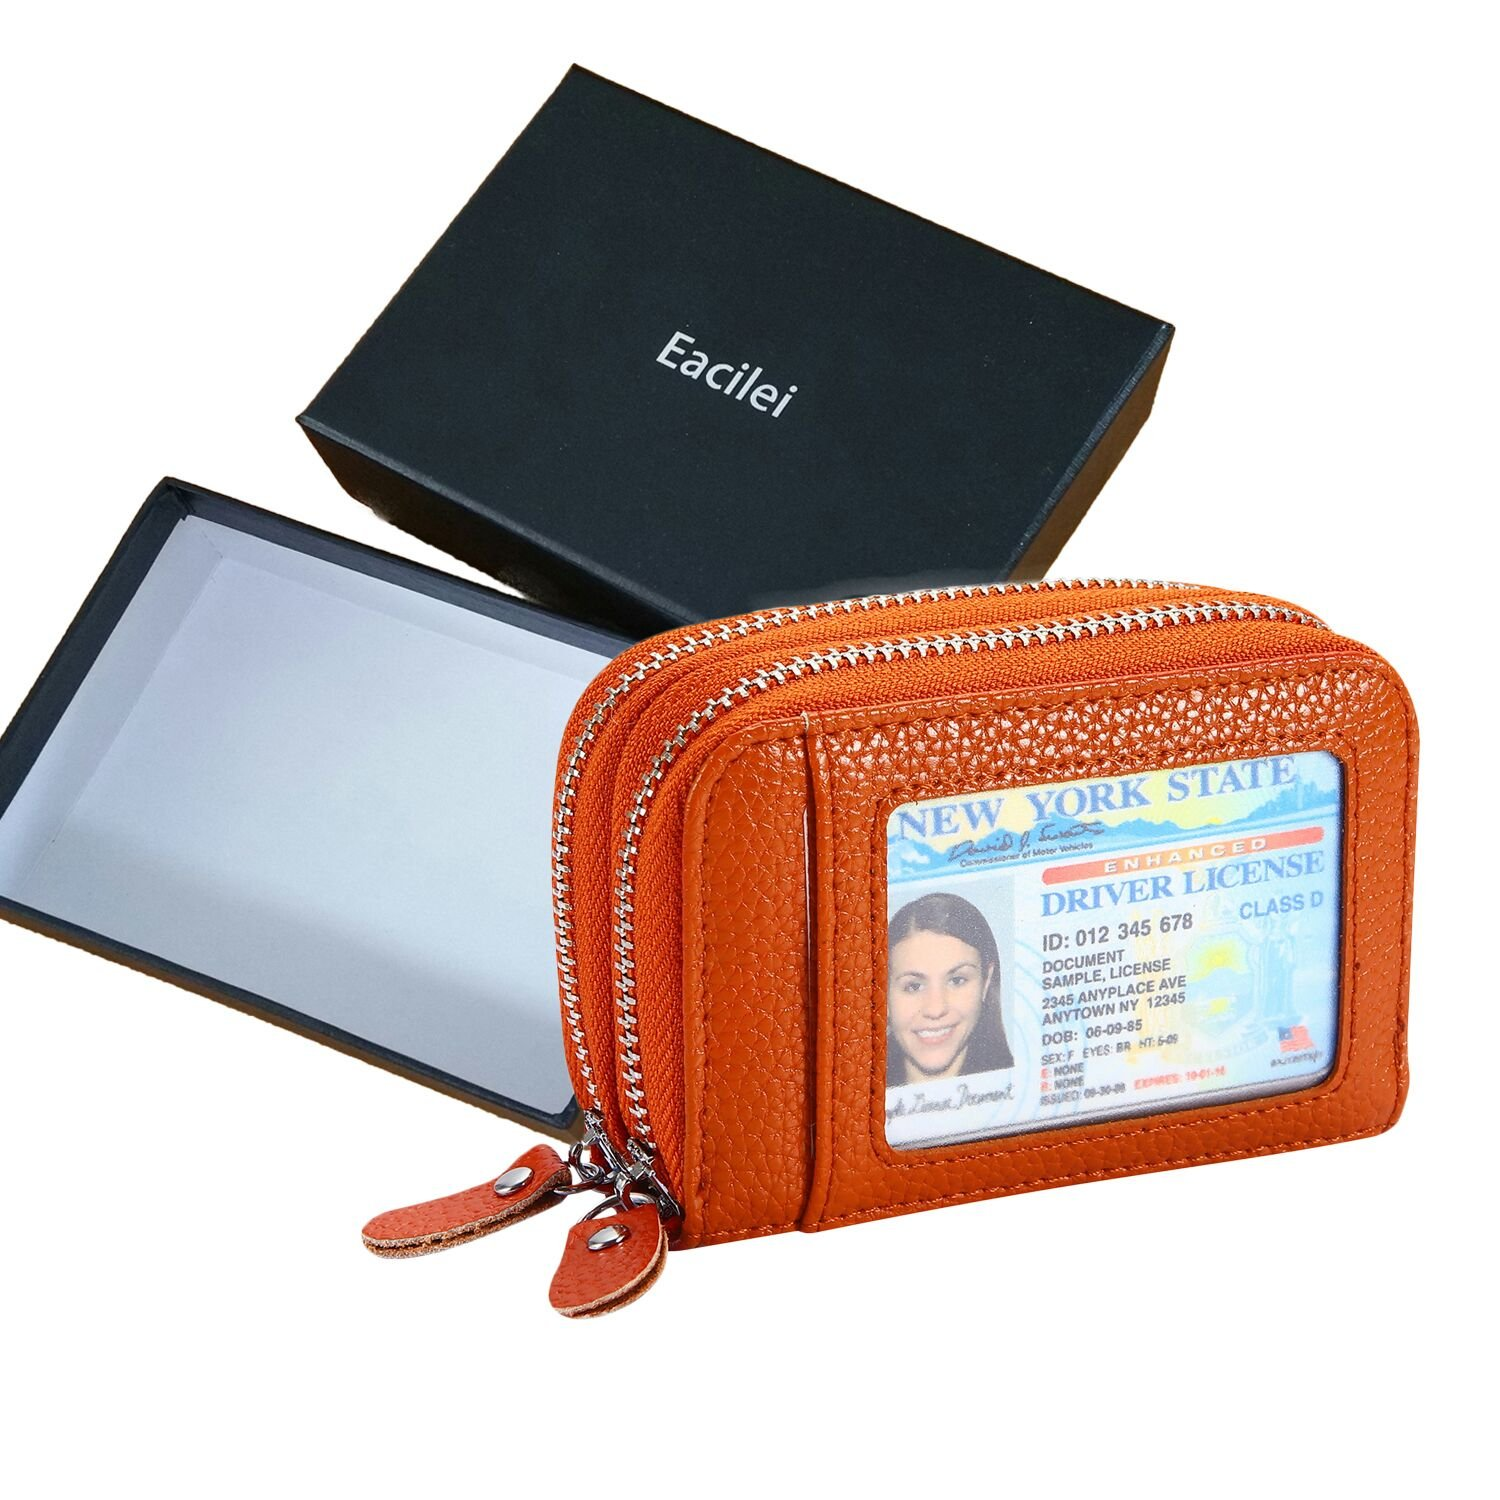 Eacilei RFID Blocking Leather Wallet Women/Women's Credit Card Holder/Protector with Coin Zipper Pocket - Small Purse (Brown)